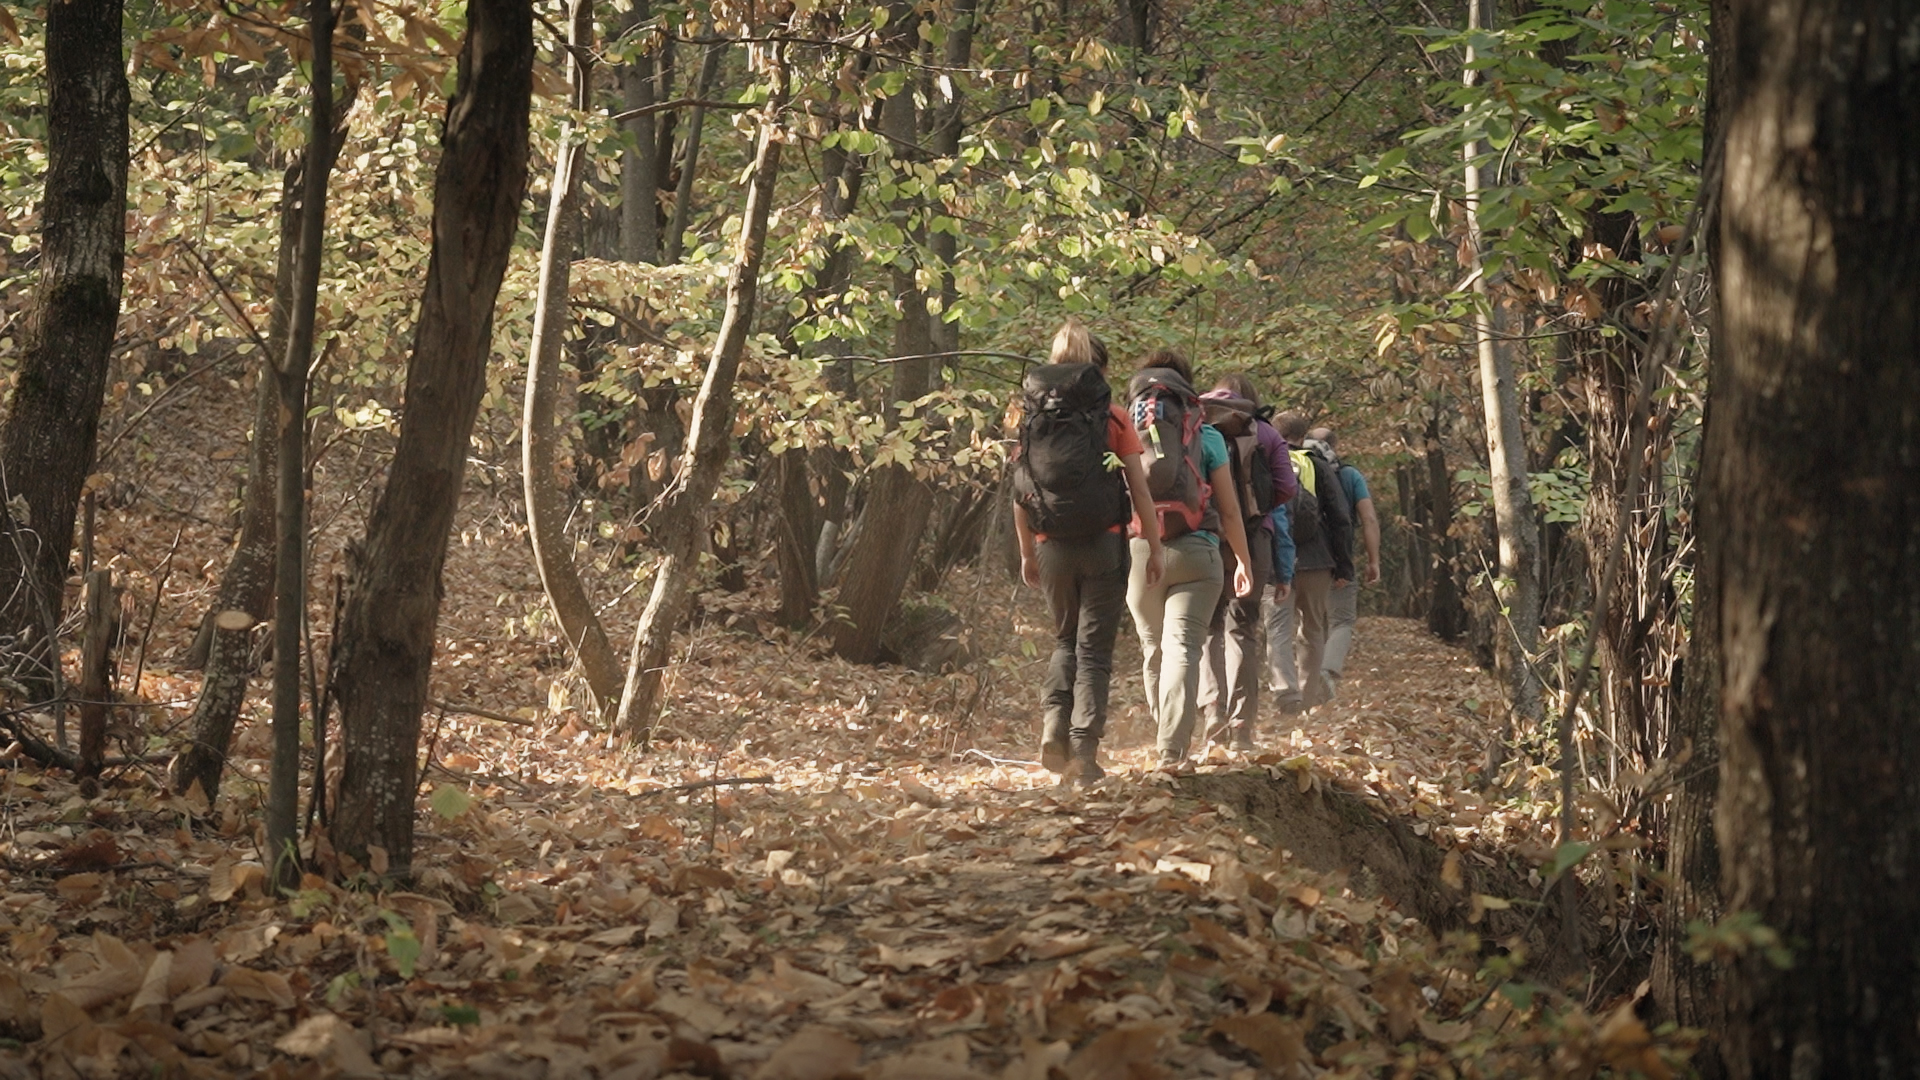 TURNING THE SHARR MOUNTAINS INTO A FAVOURITE DESTINATION FOR RURAL TOURISM